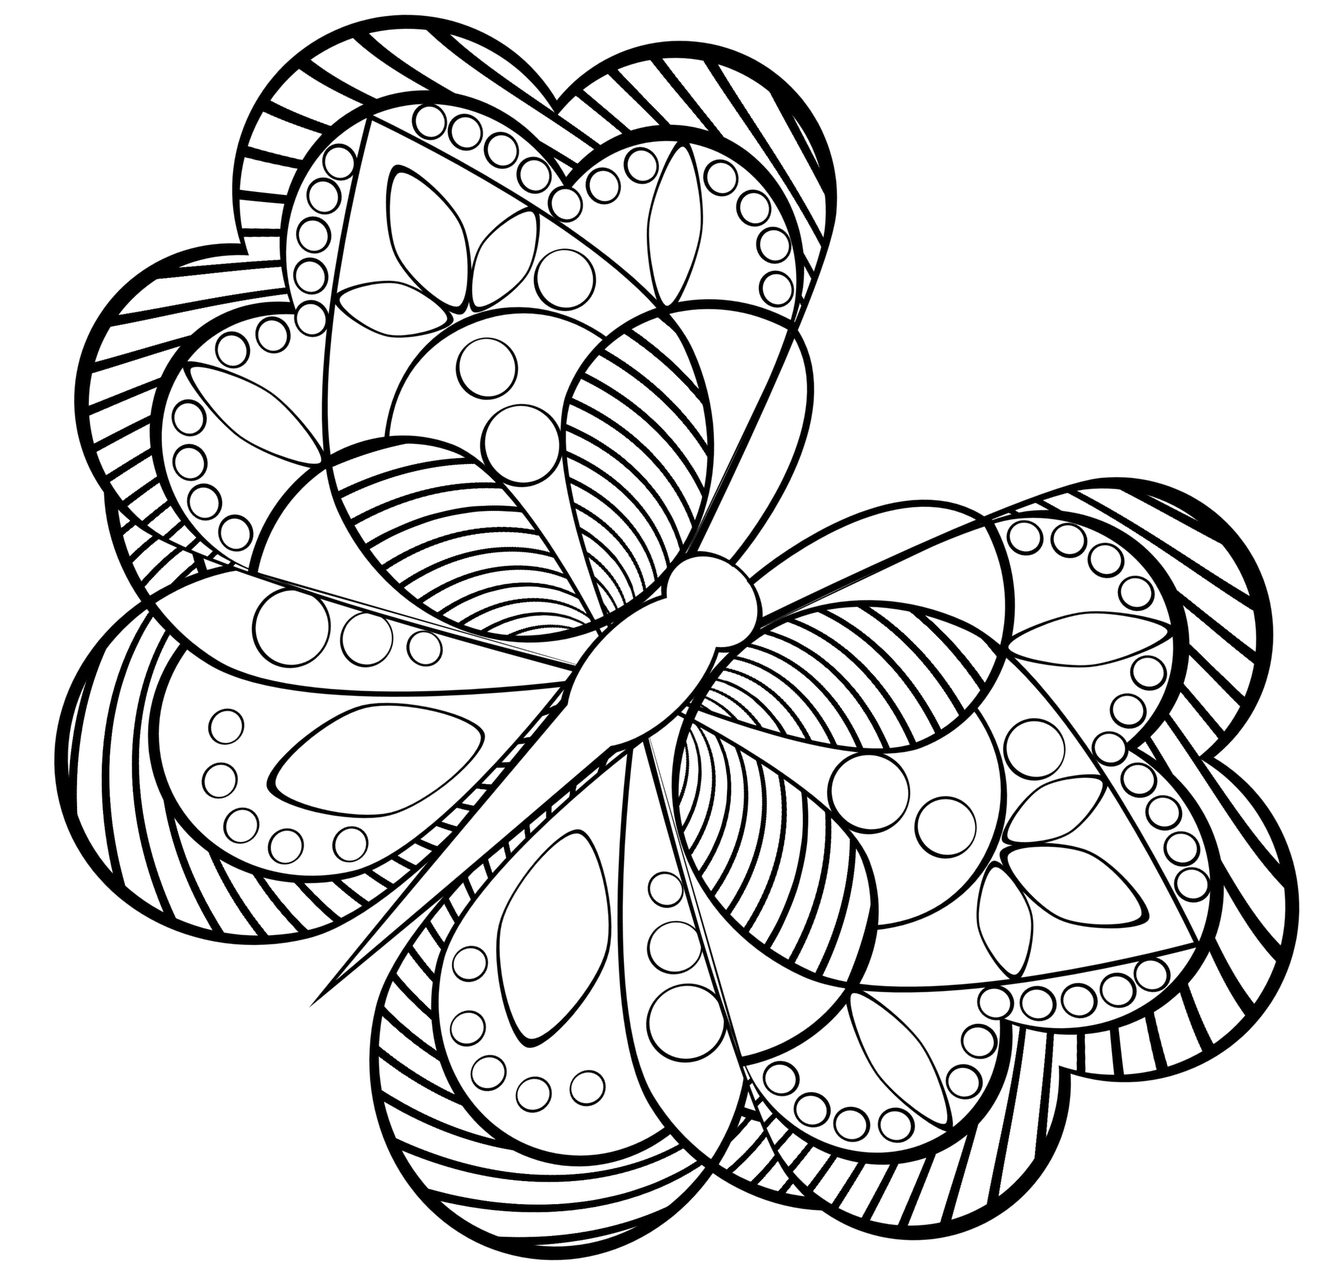 Therapy Coloring Pages To Download And Print For Free